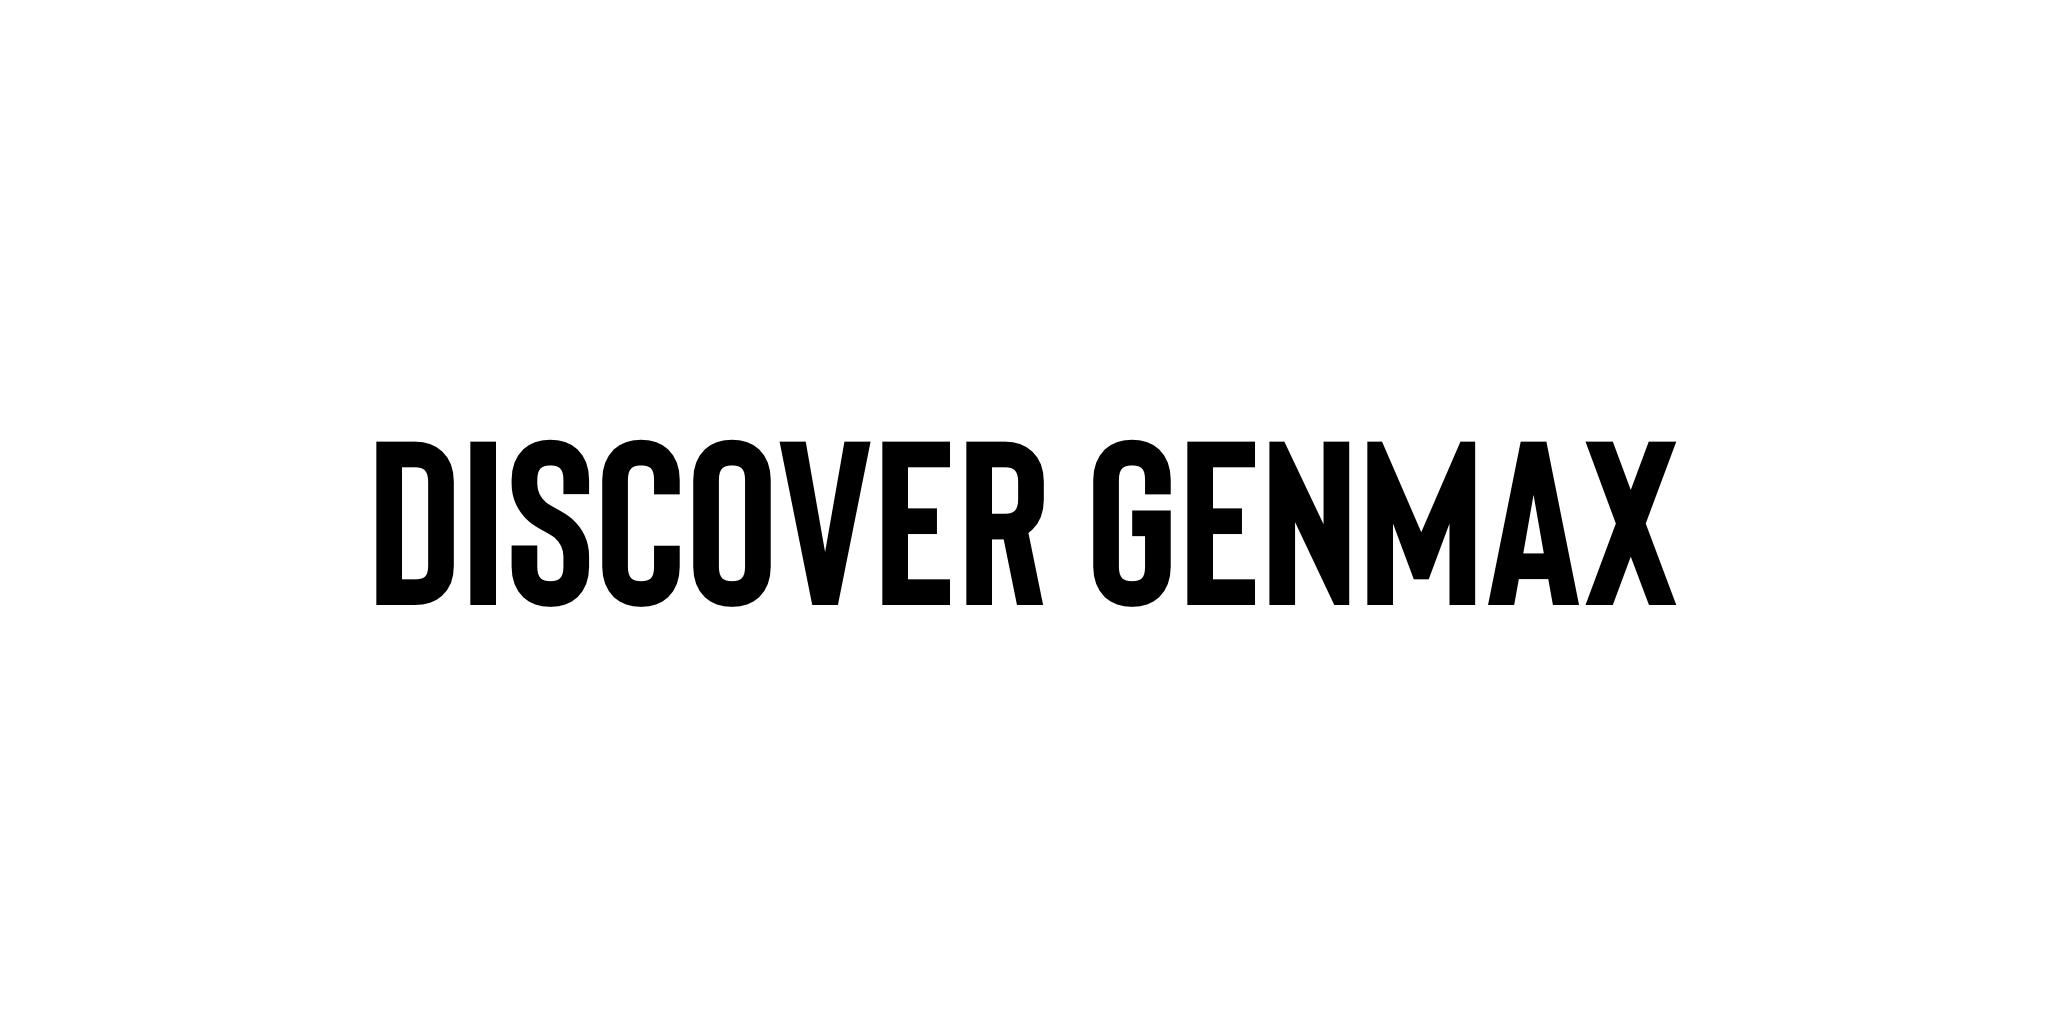 Discover genMAX